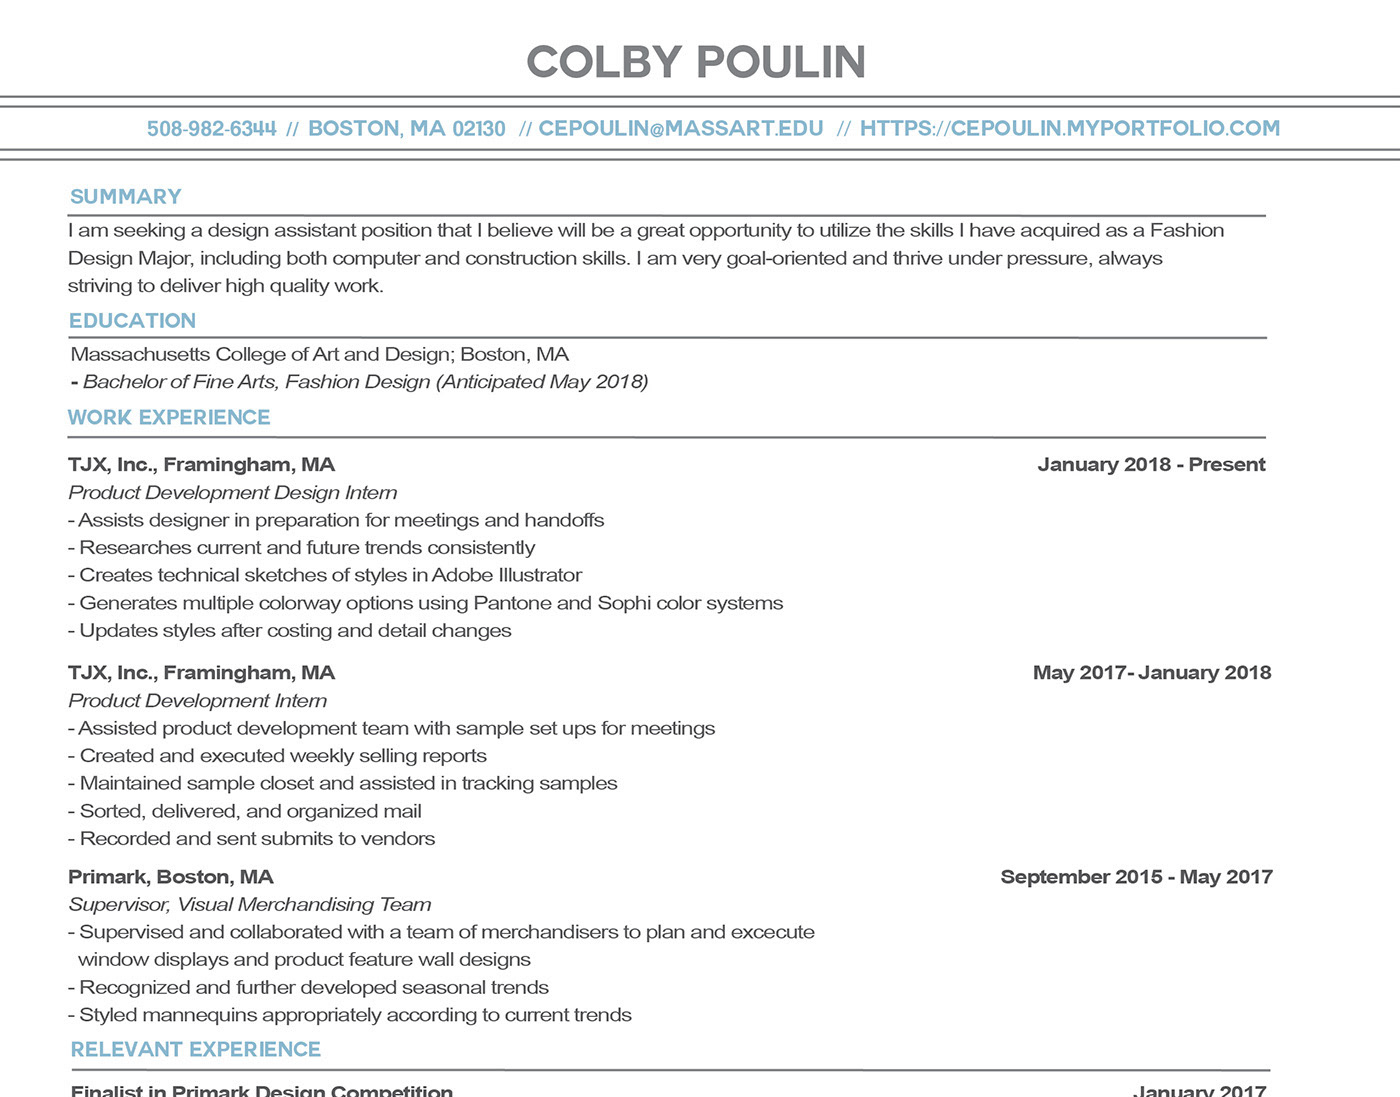 Colby Poulin Contact